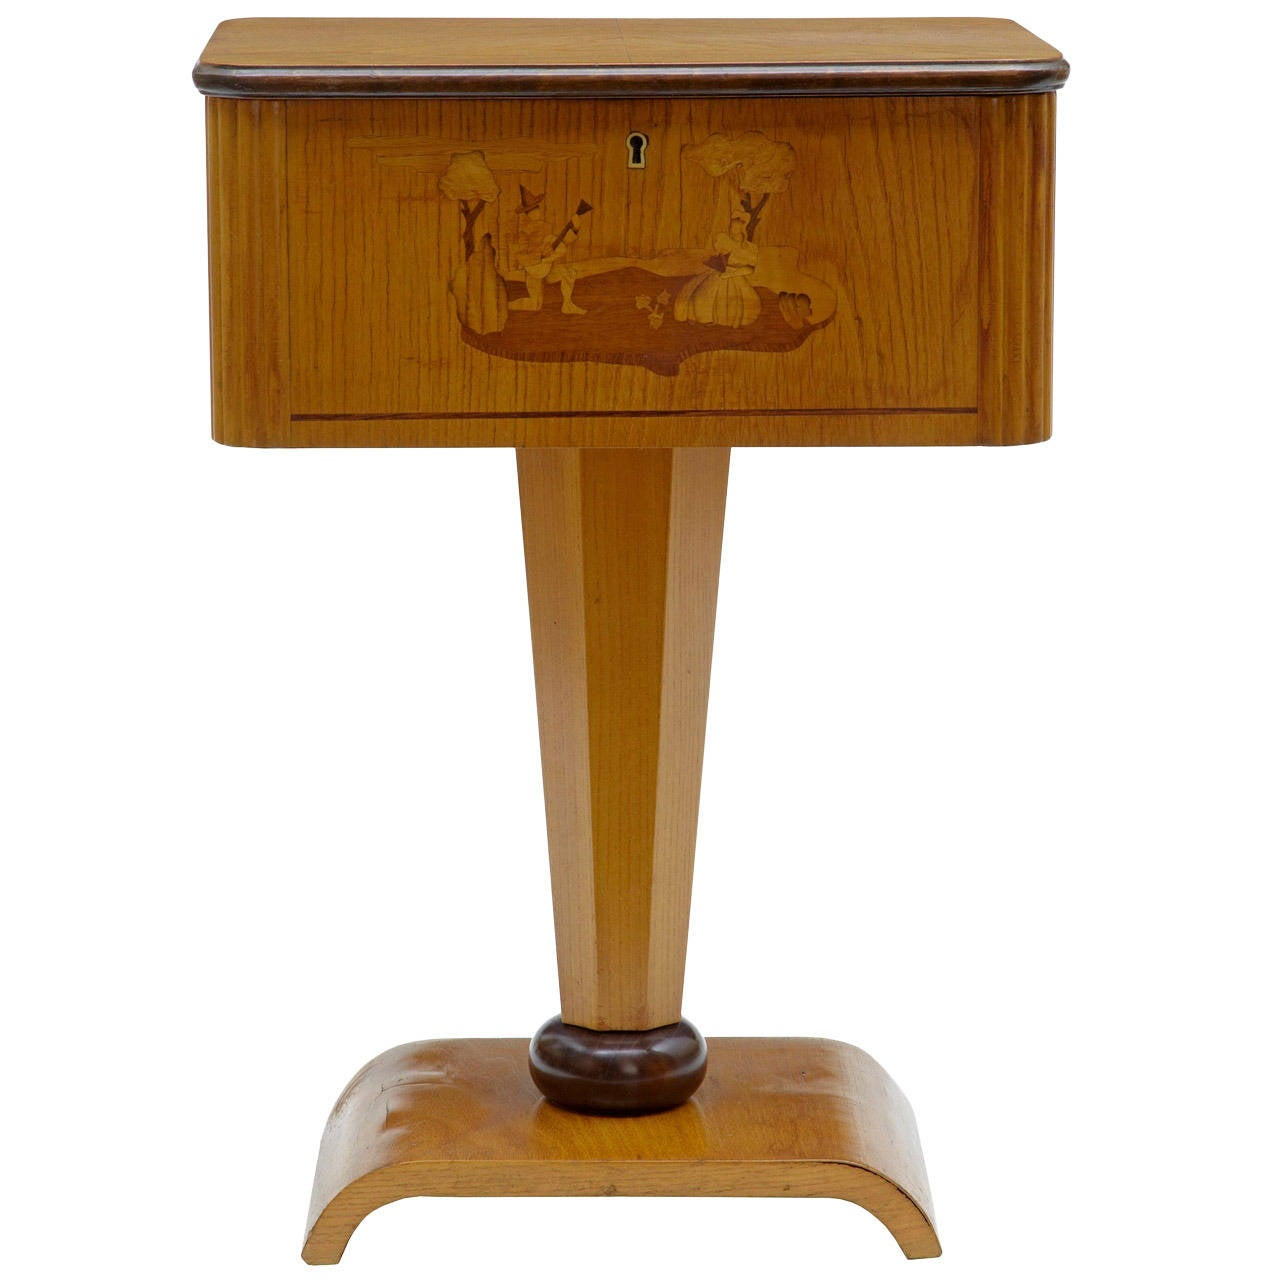 1920s Art Deco Birch Inlaid Small Work Table